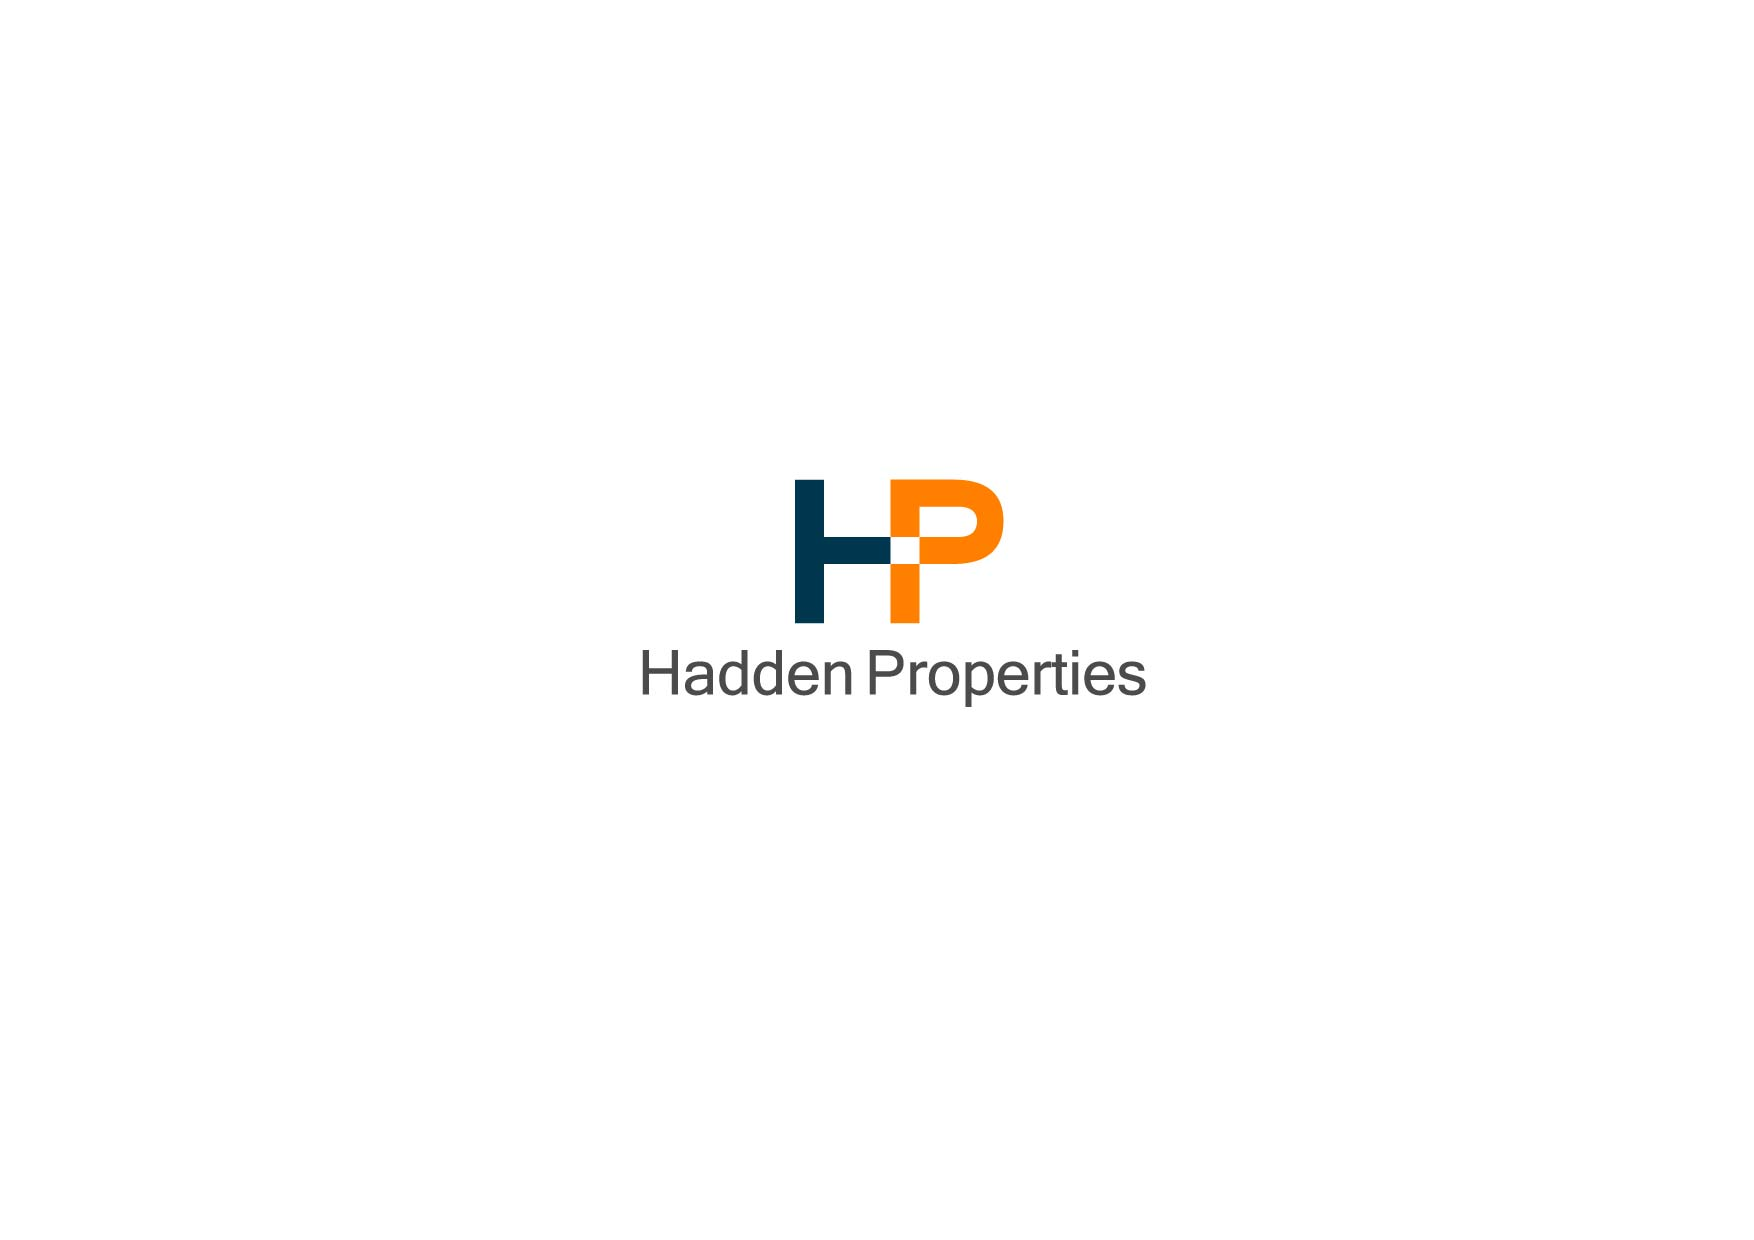 Logo Design by Osi Indra - Entry No. 83 in the Logo Design Contest Artistic Logo Design for Hadden Properties.